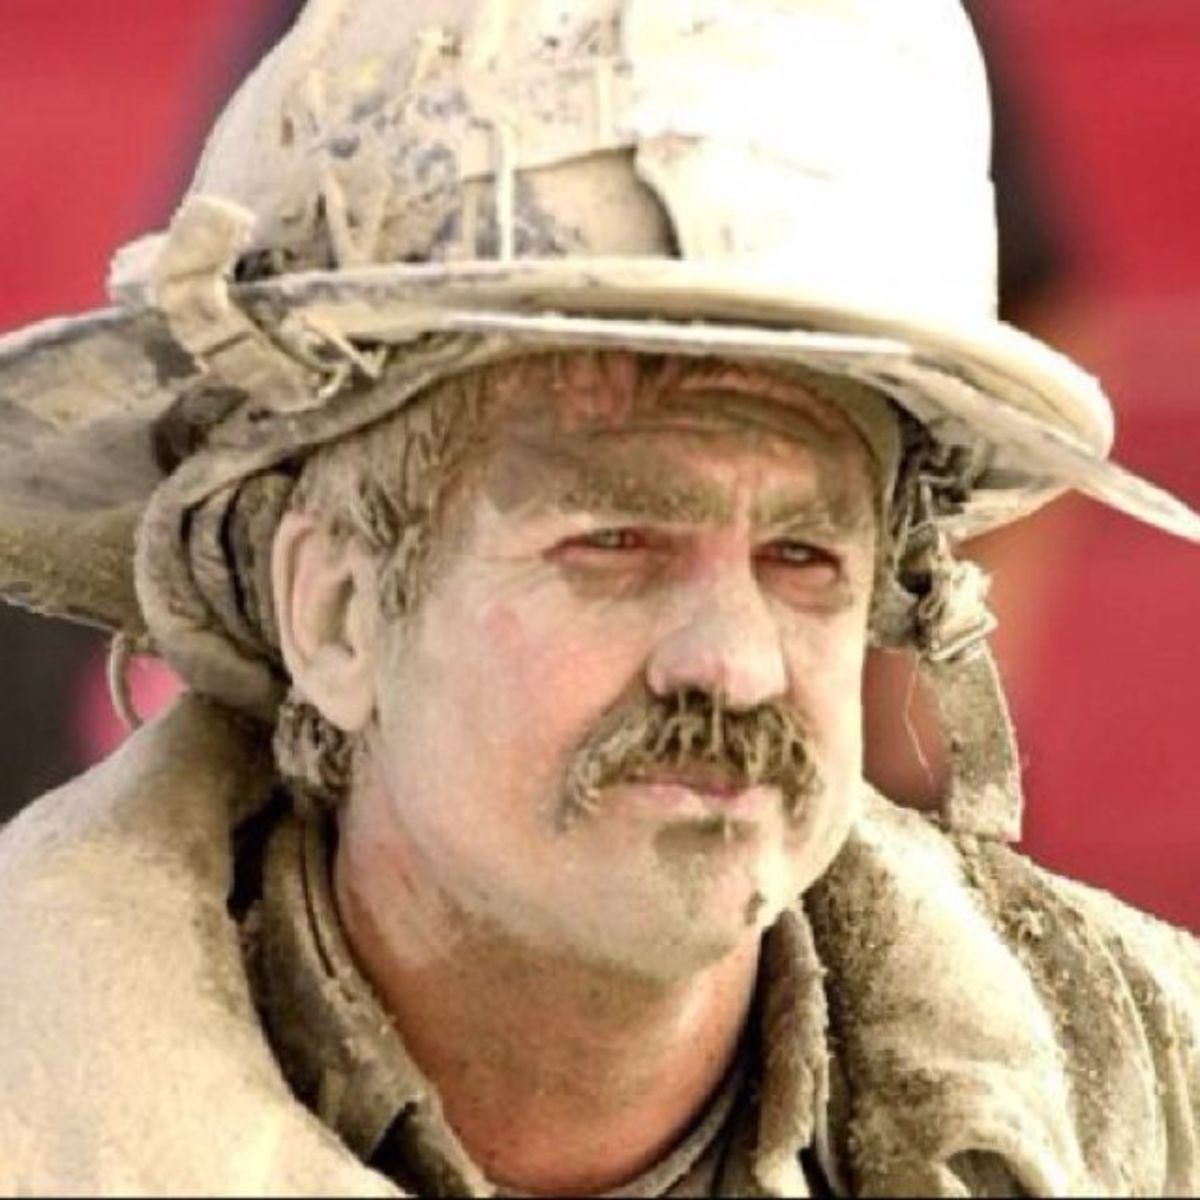 Hero:  Dust covered firefighter - notice his nose and moustache covered in dust. It looks like no mask was in use, hence no respiratory protection.